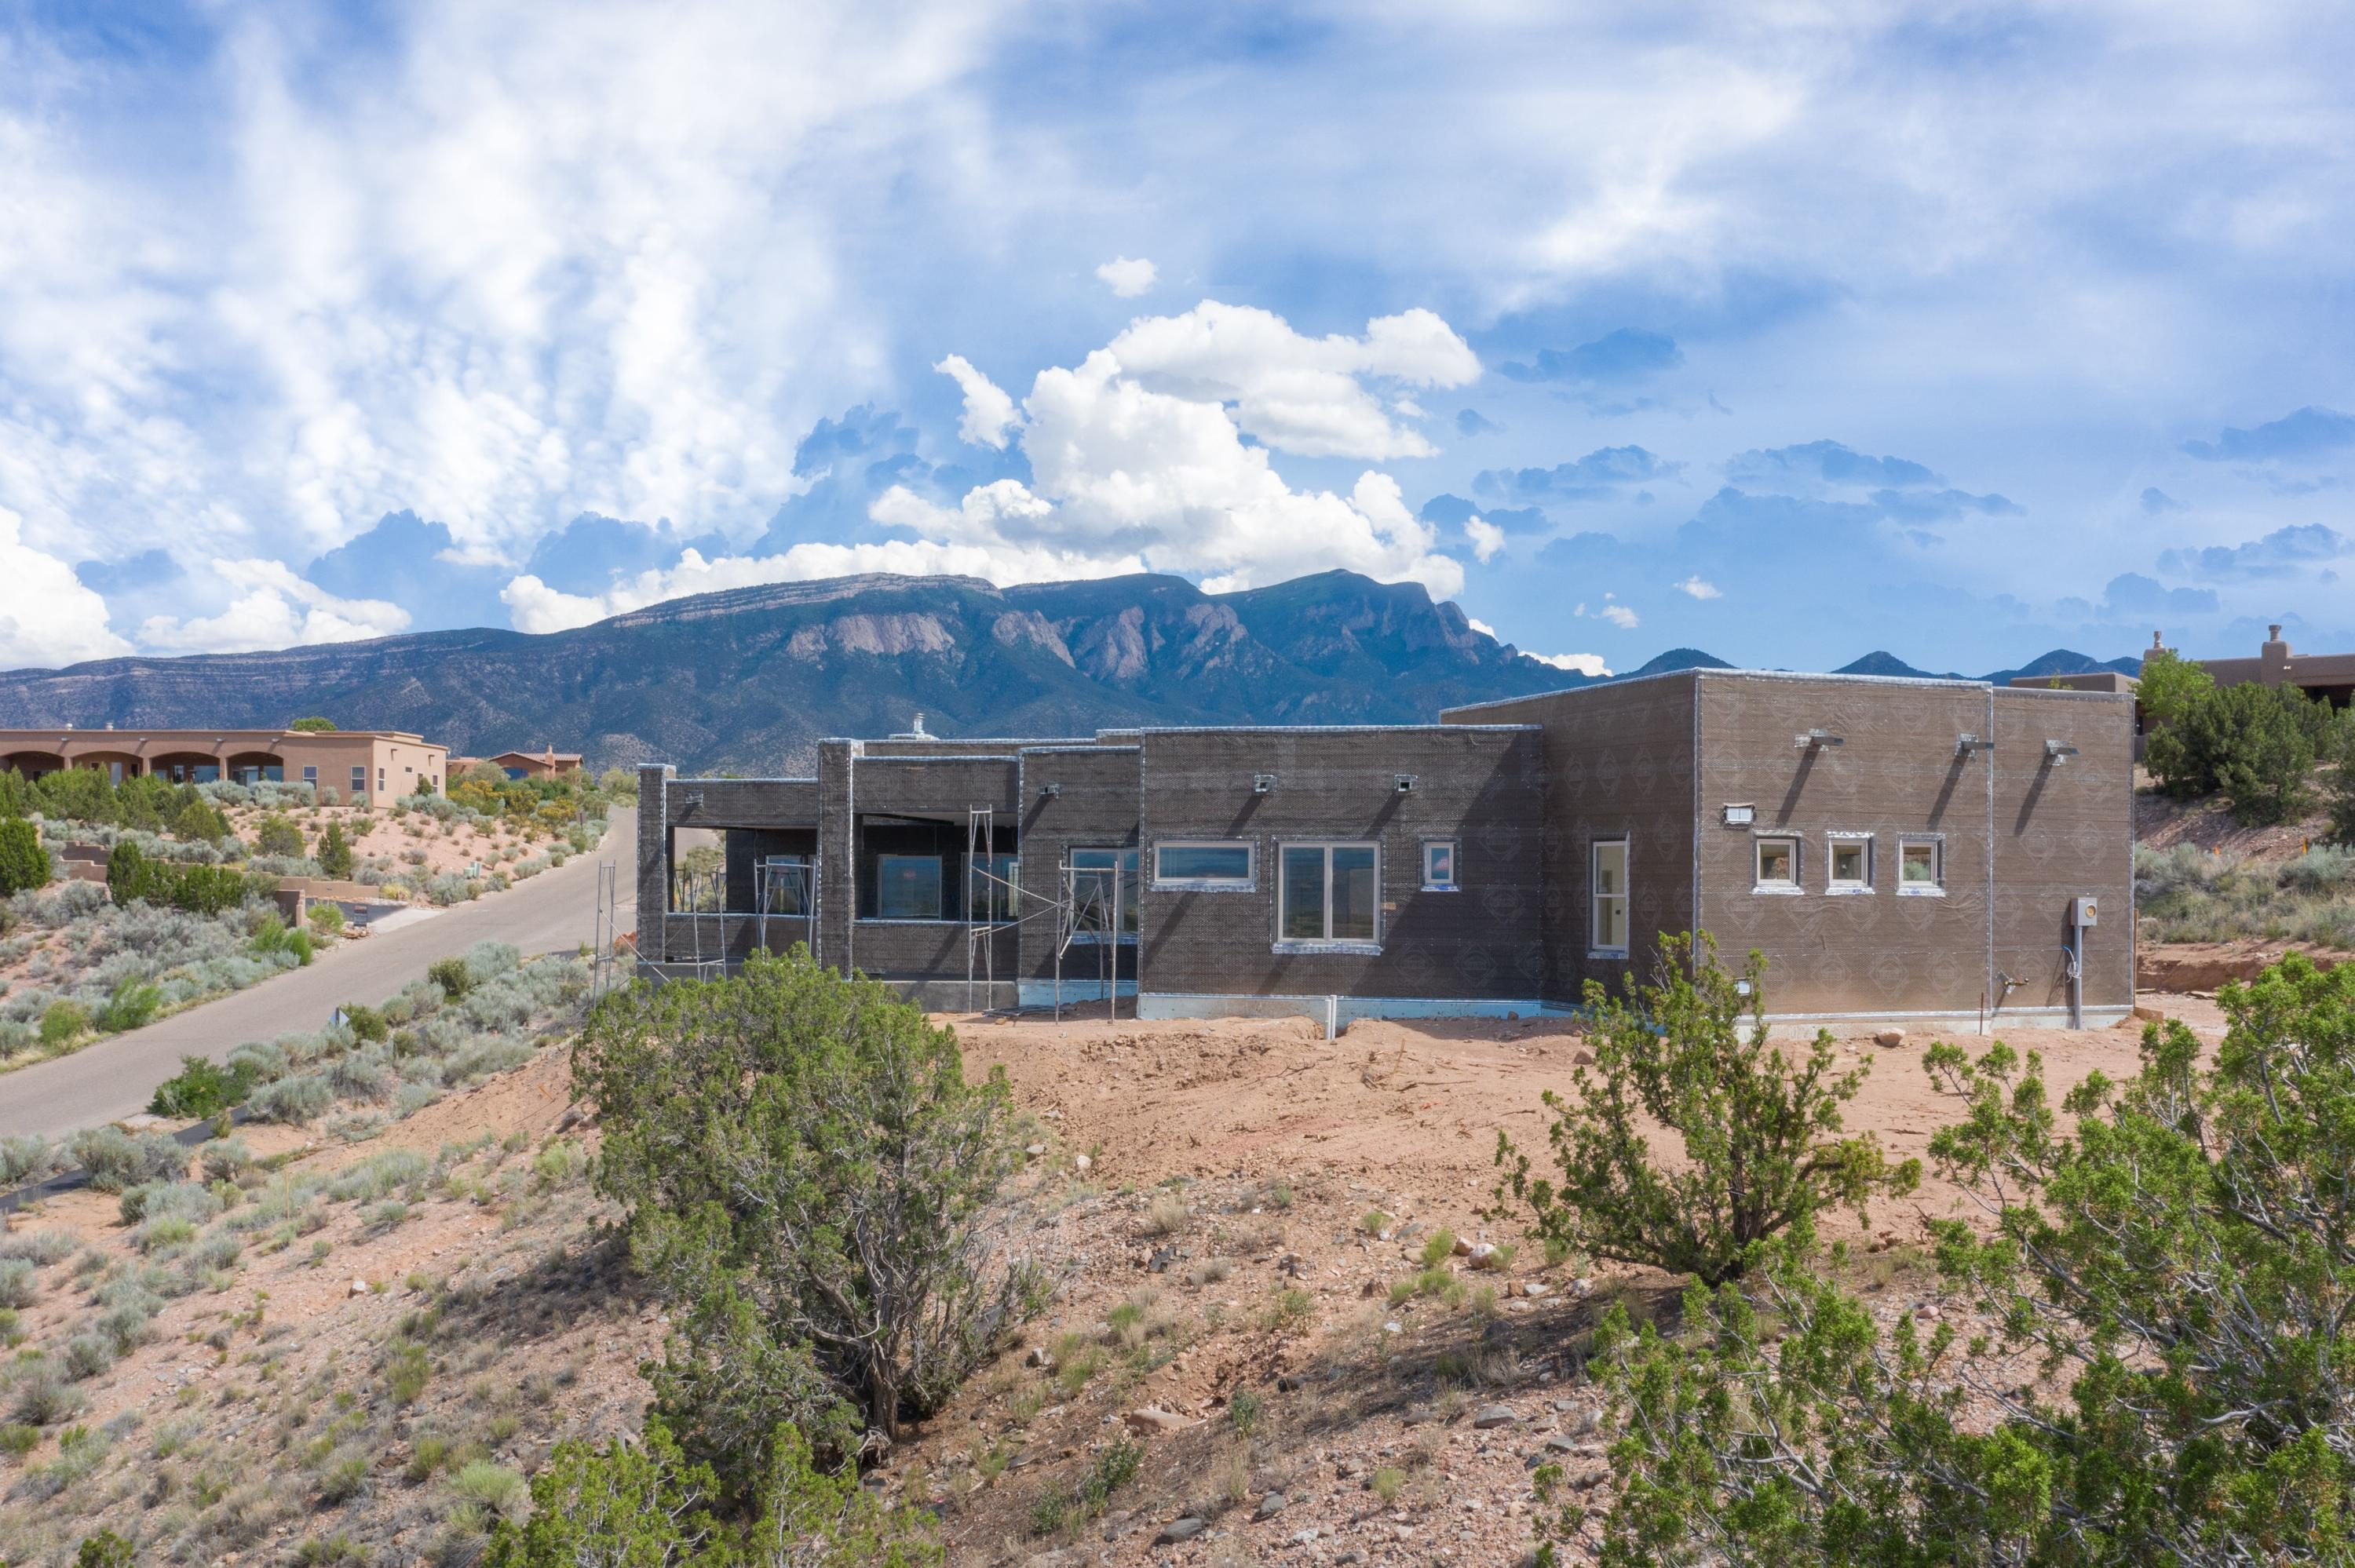 2 Tiwa Trail, Placitas, NM 87043 - Placitas, NM real estate listing